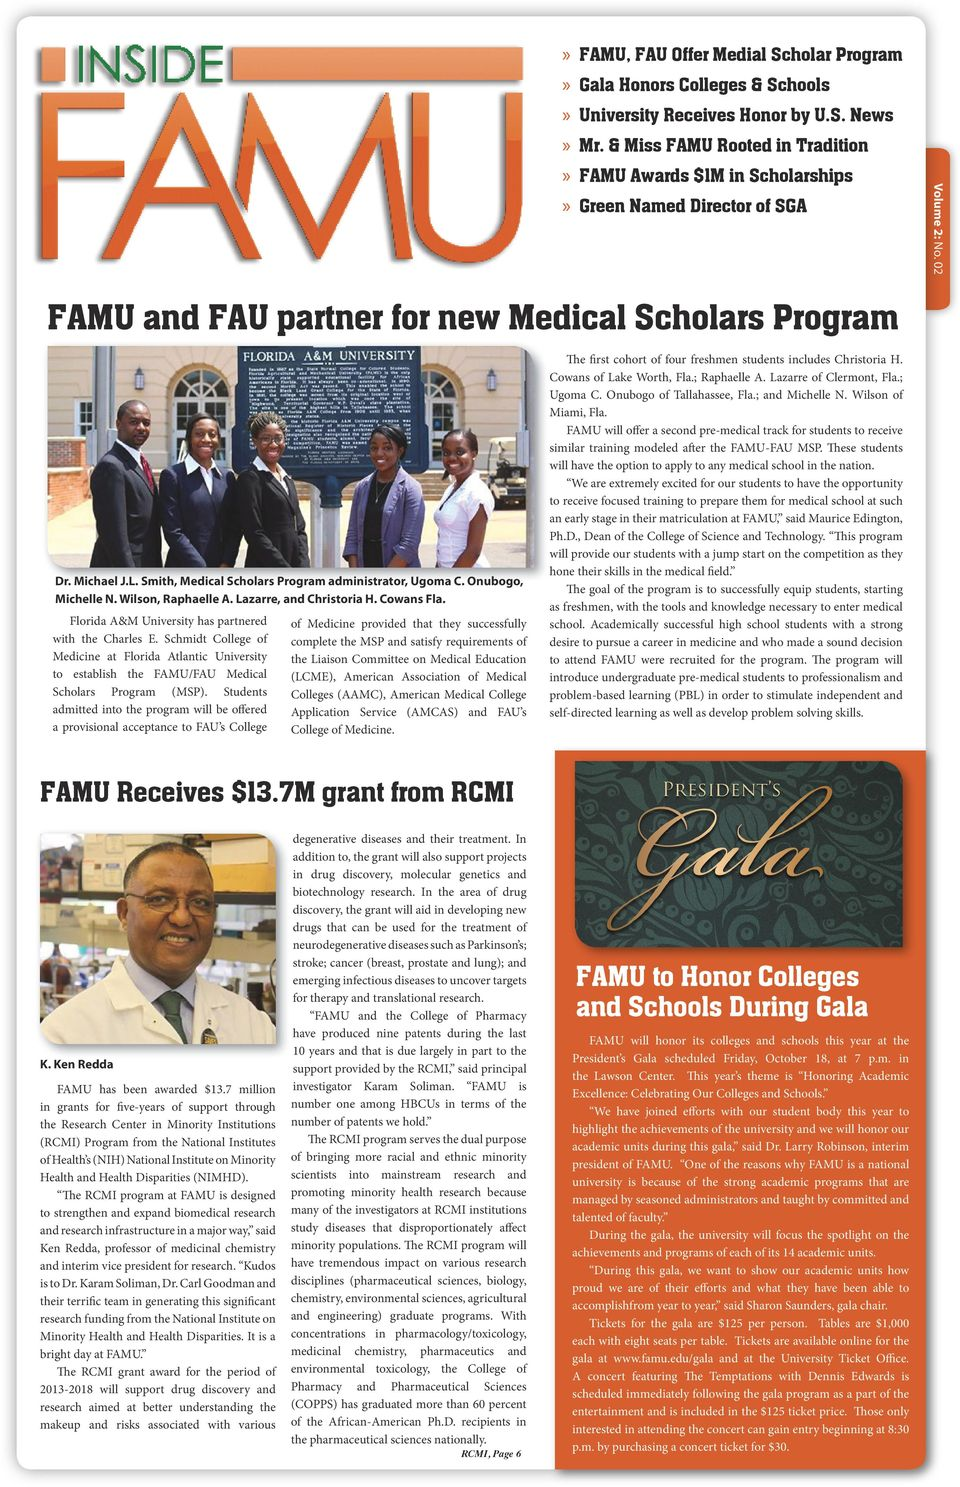 Smith, Medical Scholars Program administrator, Ugoma C. Onubogo, Michelle N. Wilson, Raphaelle A. Lazarre, and Christoria H. Cowans Fla. Florida A&M University has partnered with the Charles E.